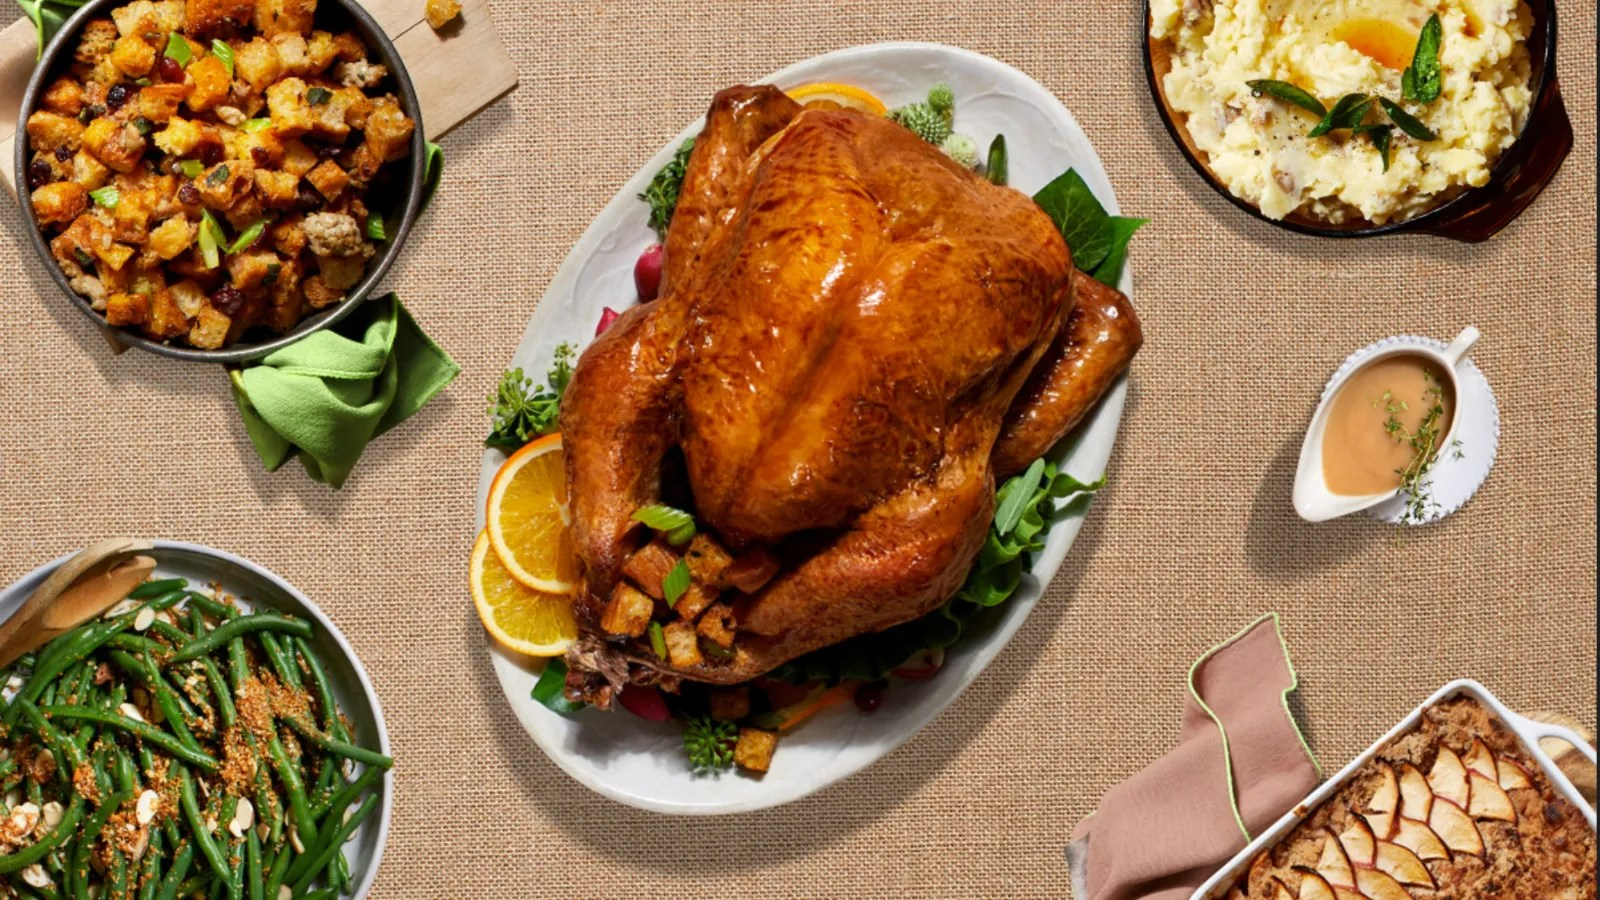 Fun Order A Complete Thanksgiving Meal From Hellofresh Order Thanksgiving Dinner Seattle Order Thanksgiving Dinner From Cracker Barrel nice food Order Thanksgiving Dinner